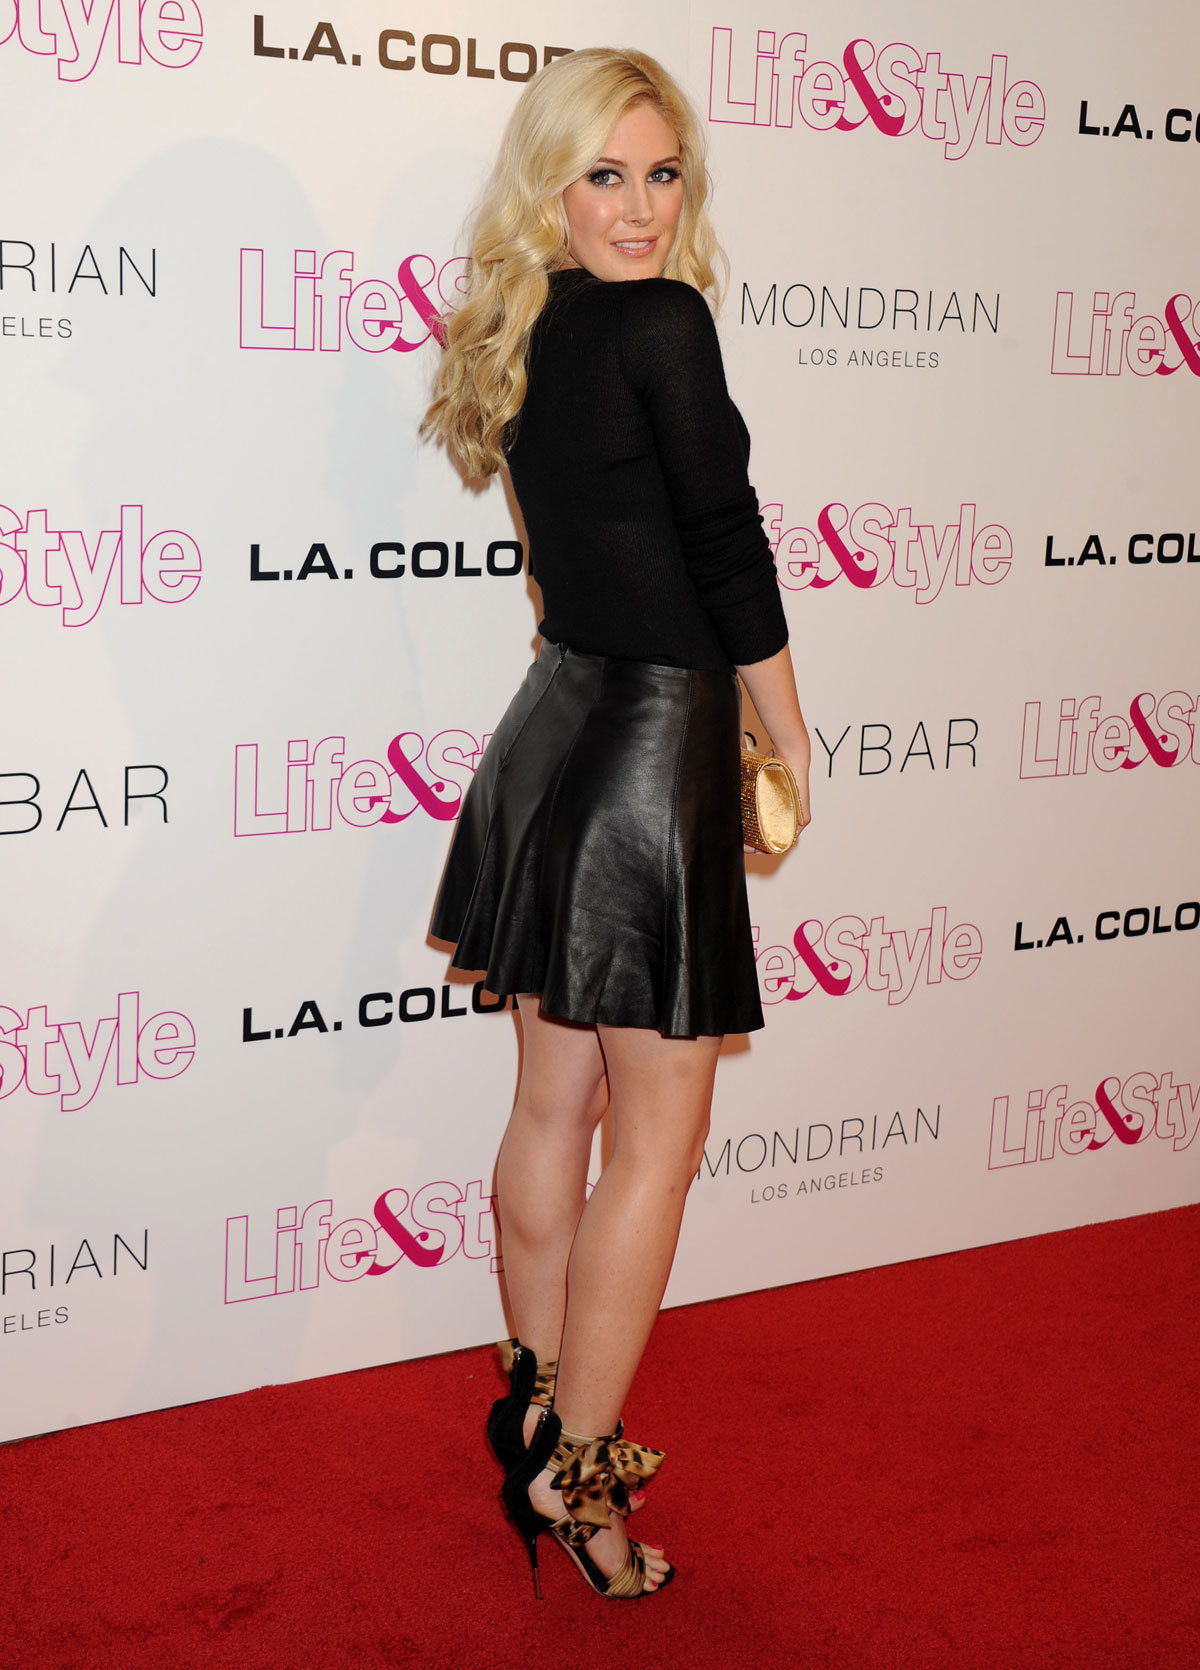 Heidi Montag attends Life & Style Weekly's 10th anniversary party